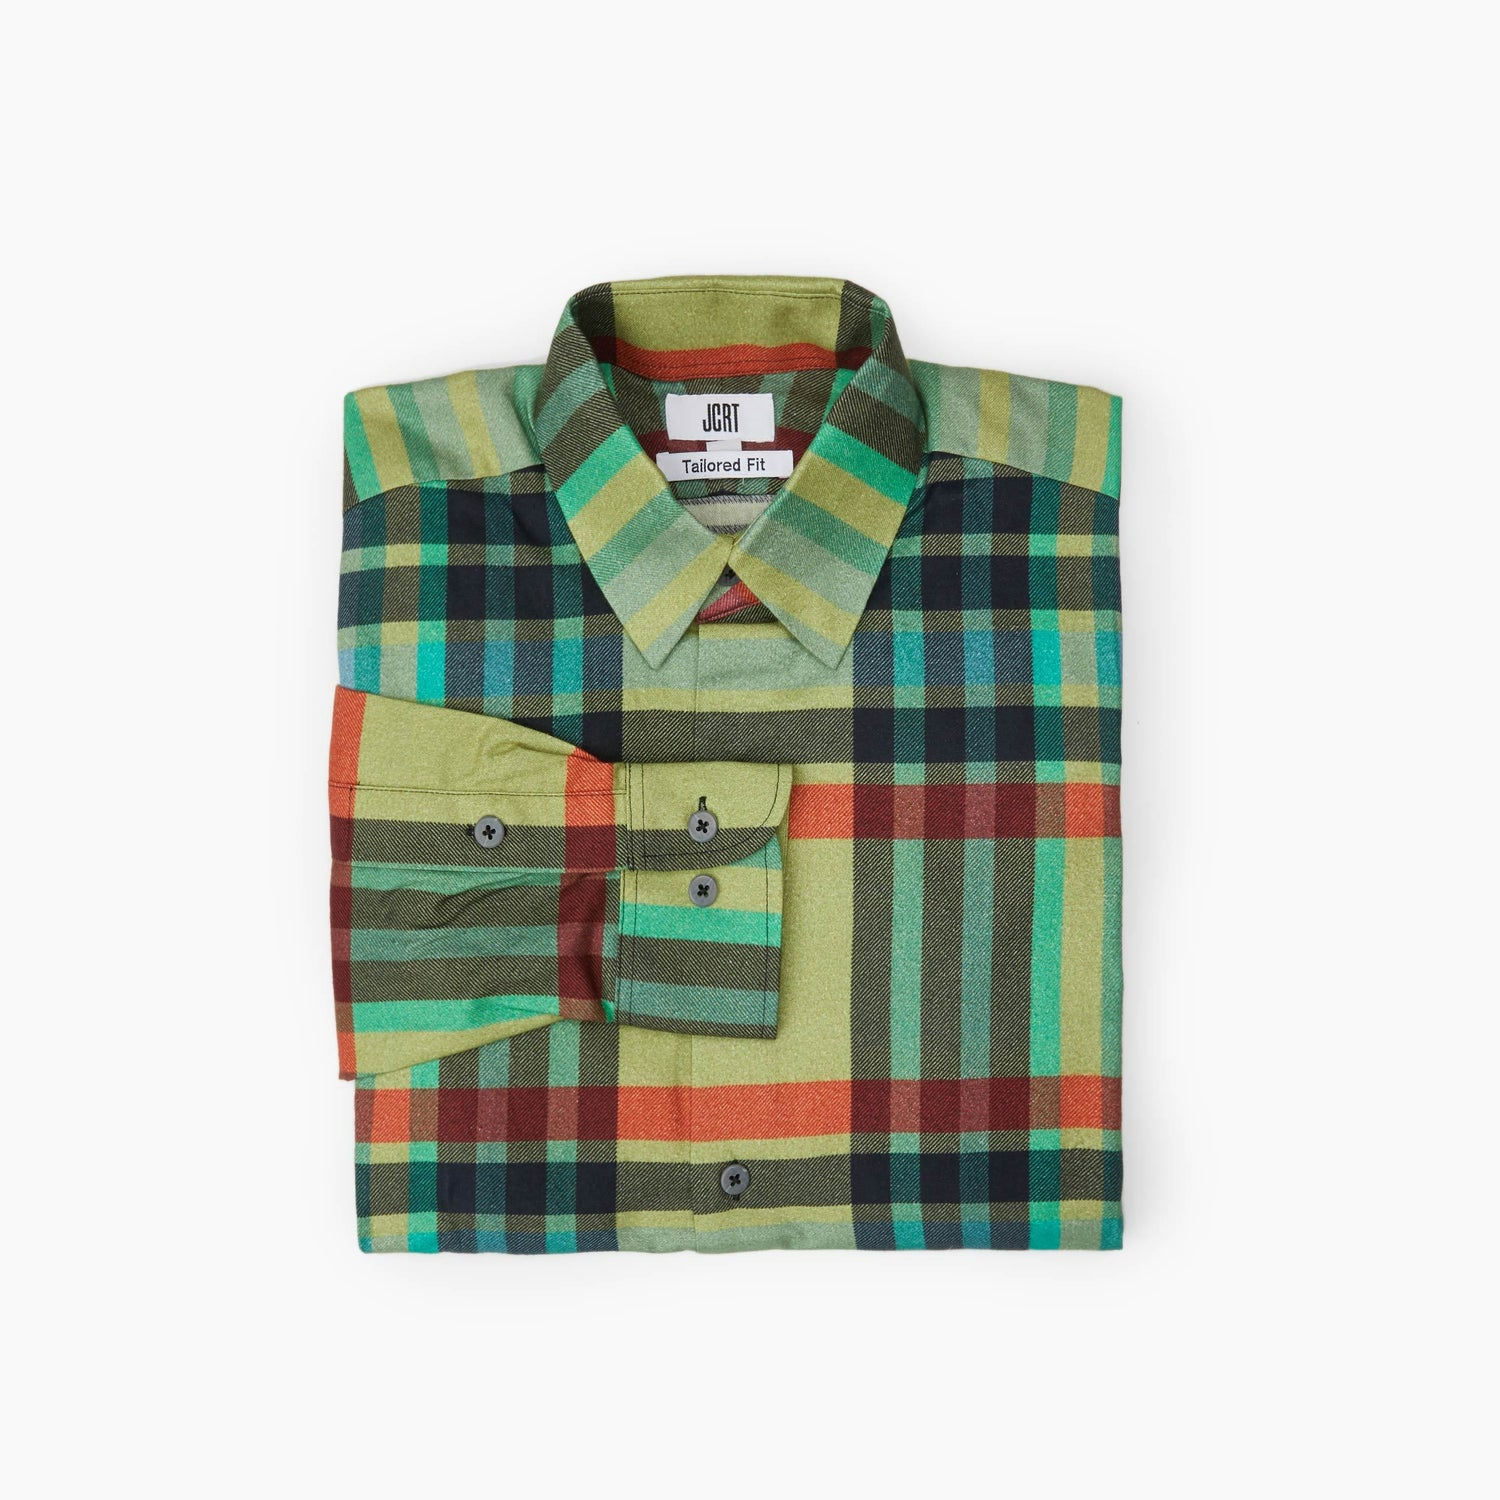 The Frankenstein Flannel